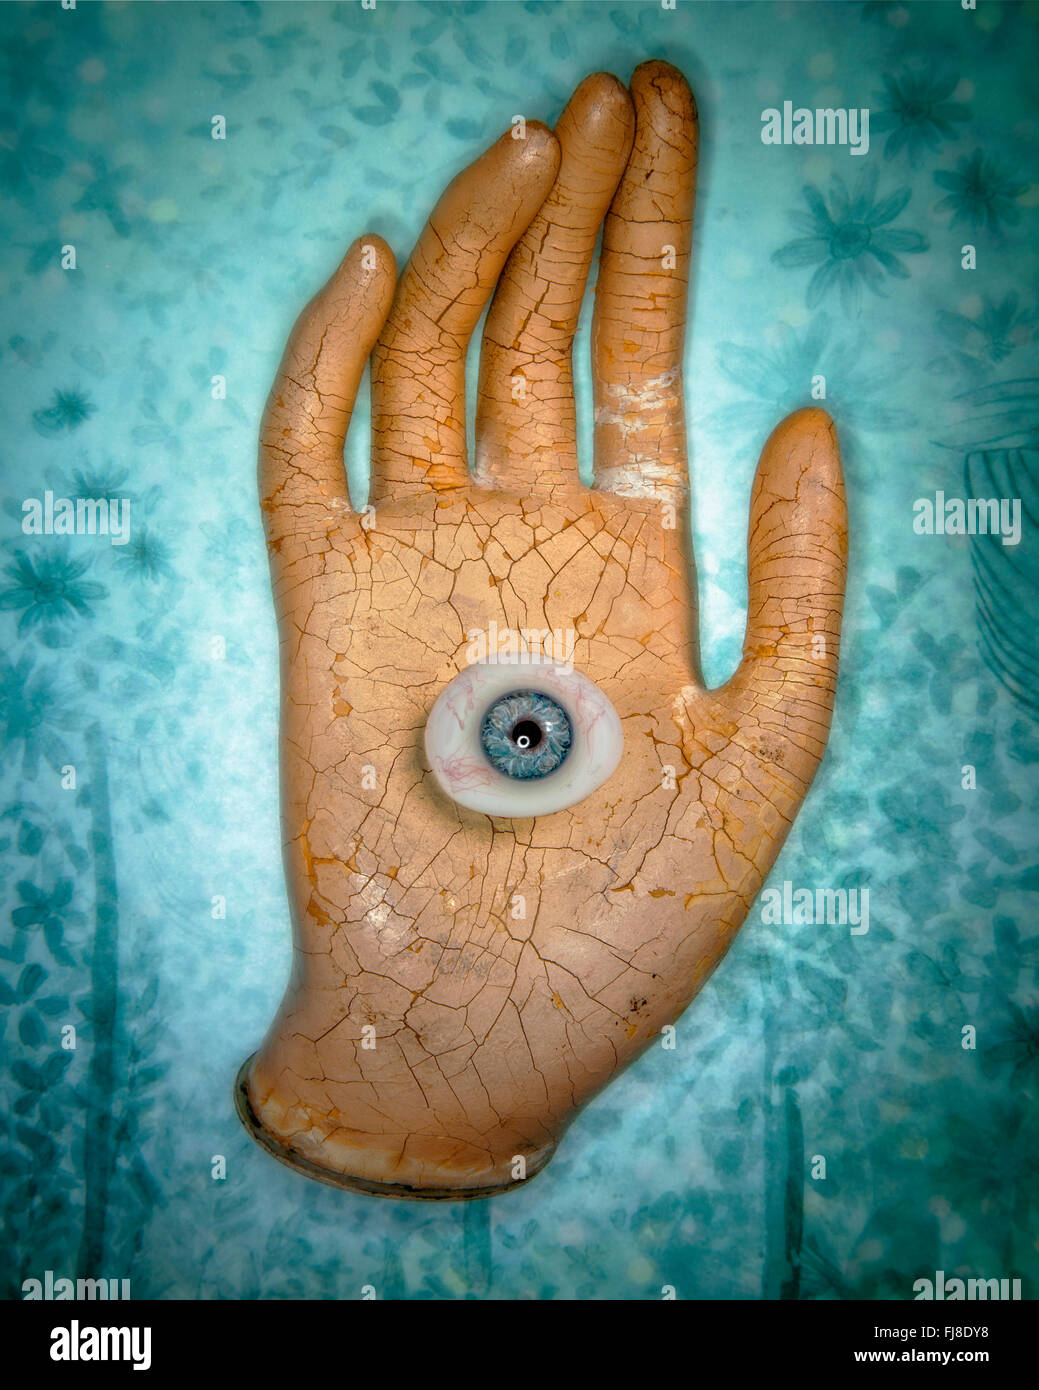 A glass eyeball in the palm of a mannequin hand on blue background. - Stock Image